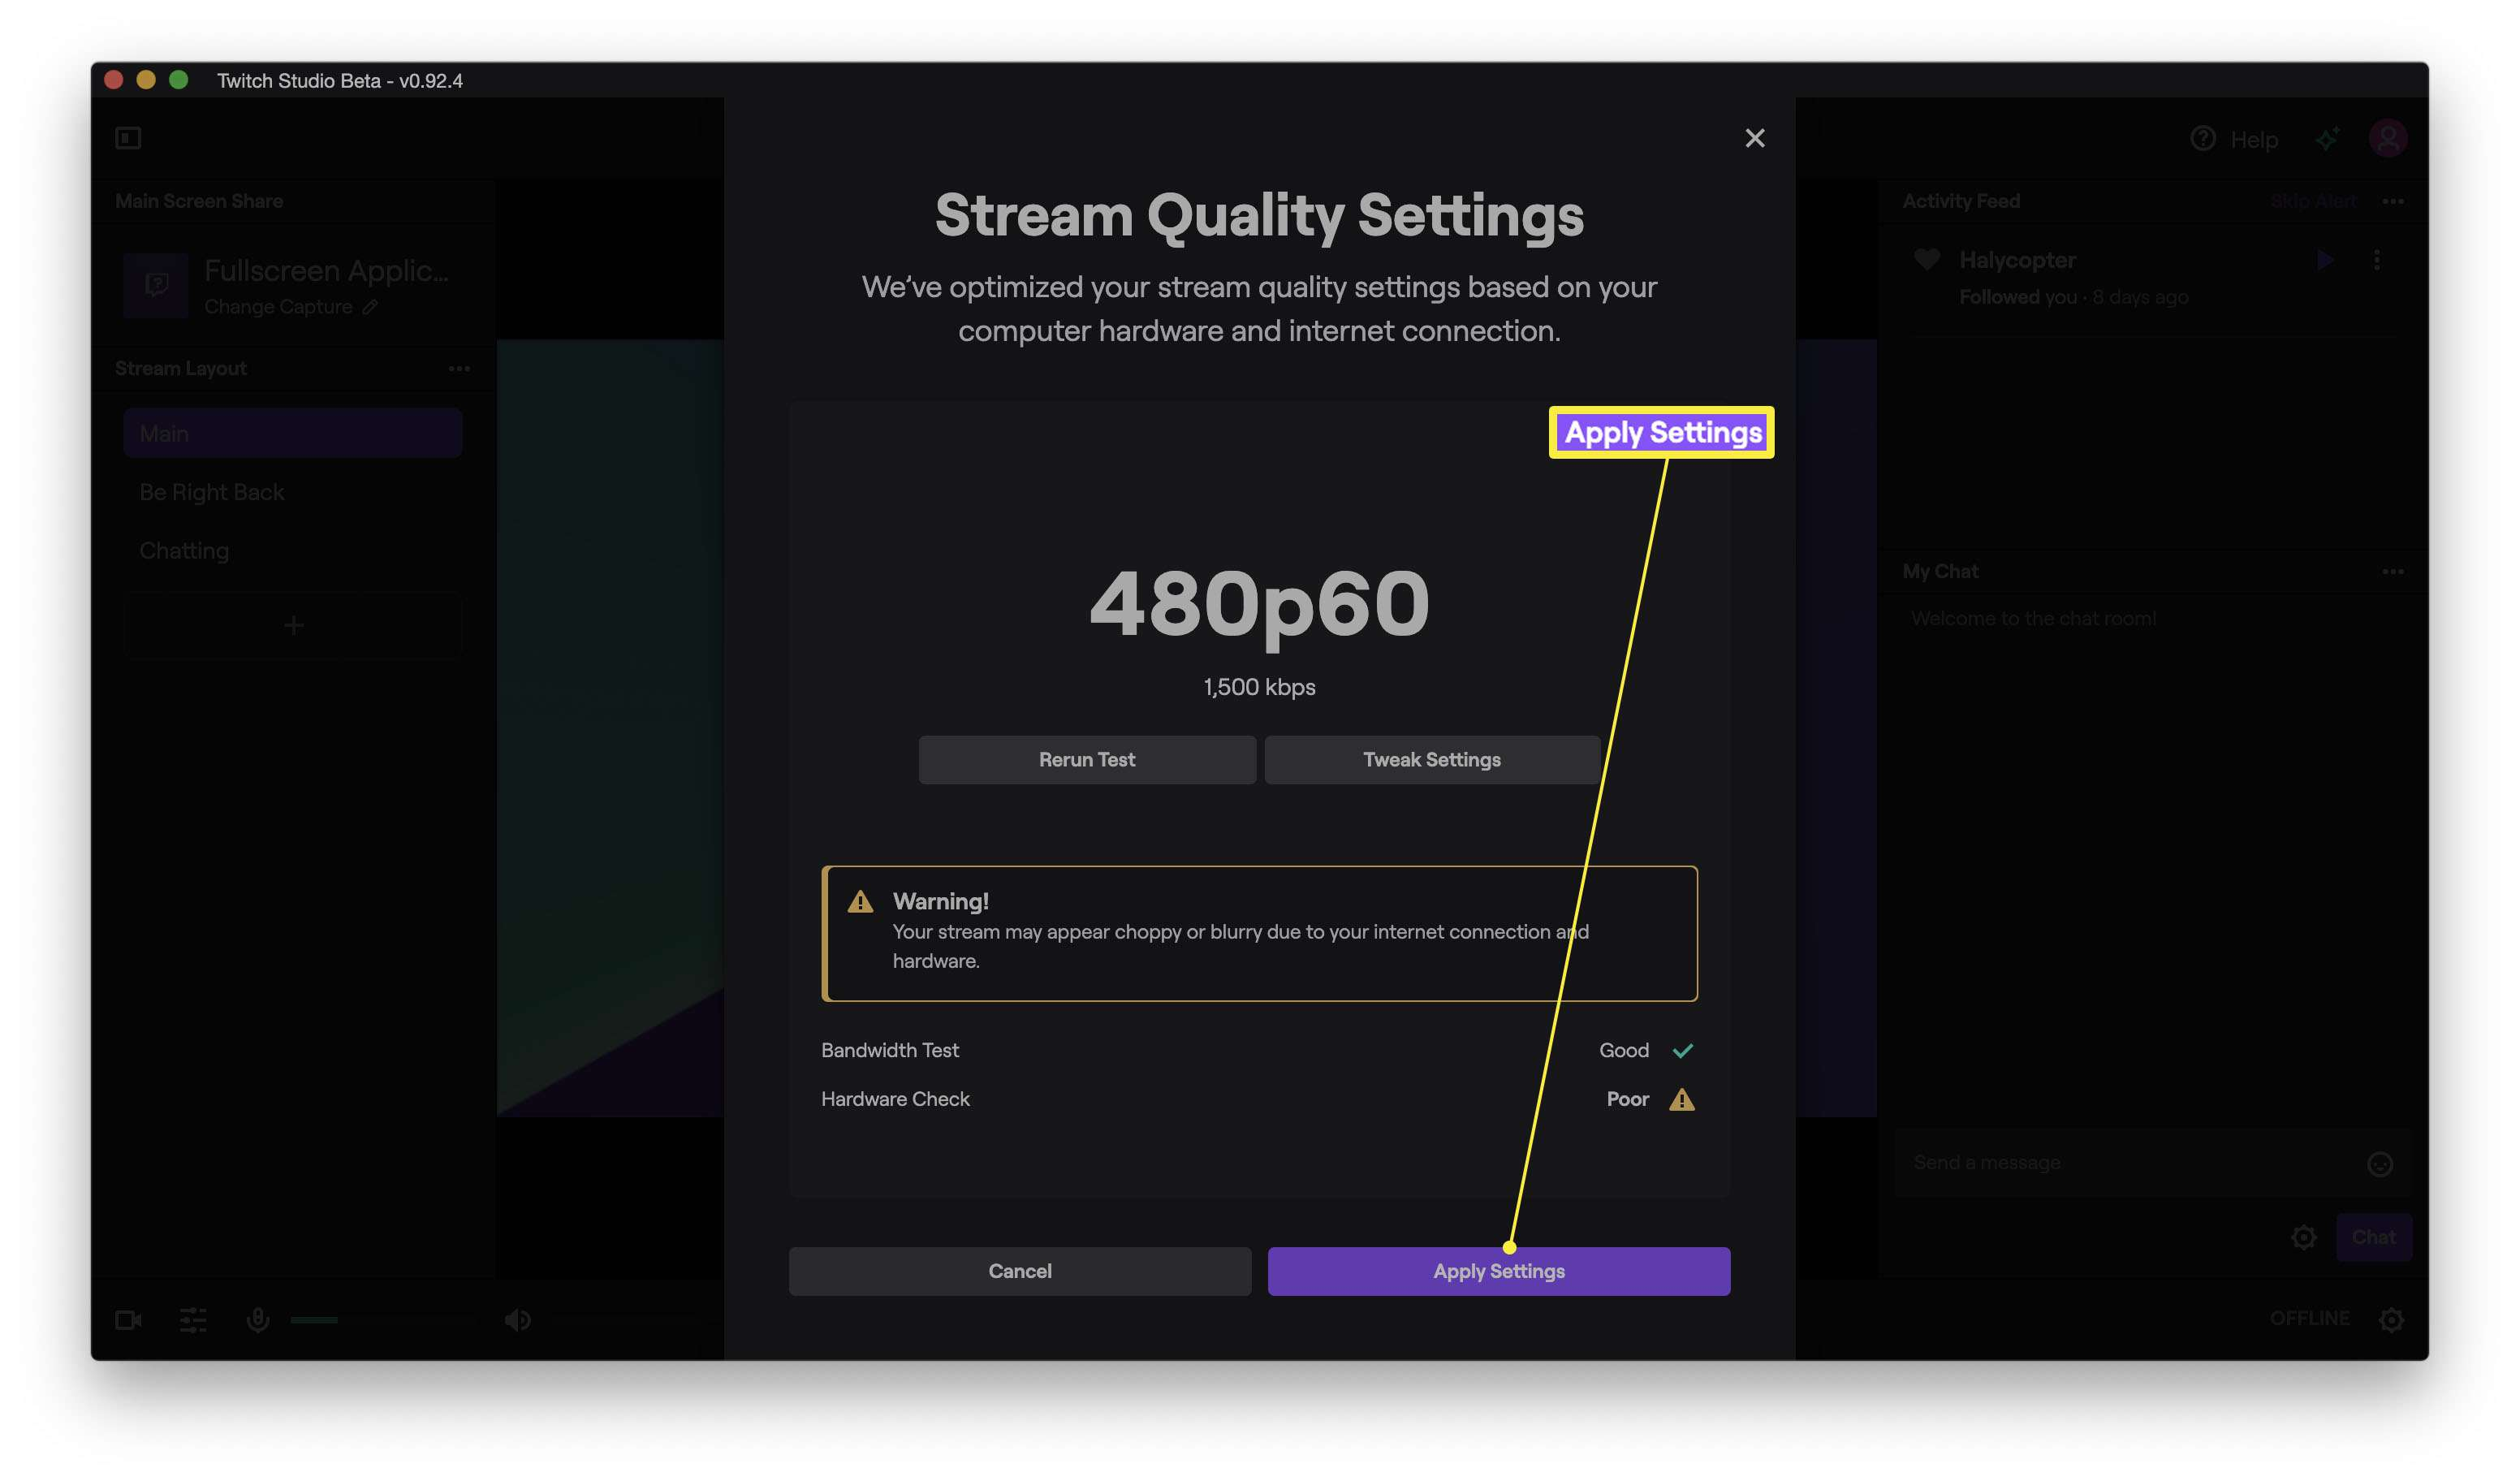 Twitch Studio with Stream Quality Settings completion message displaying